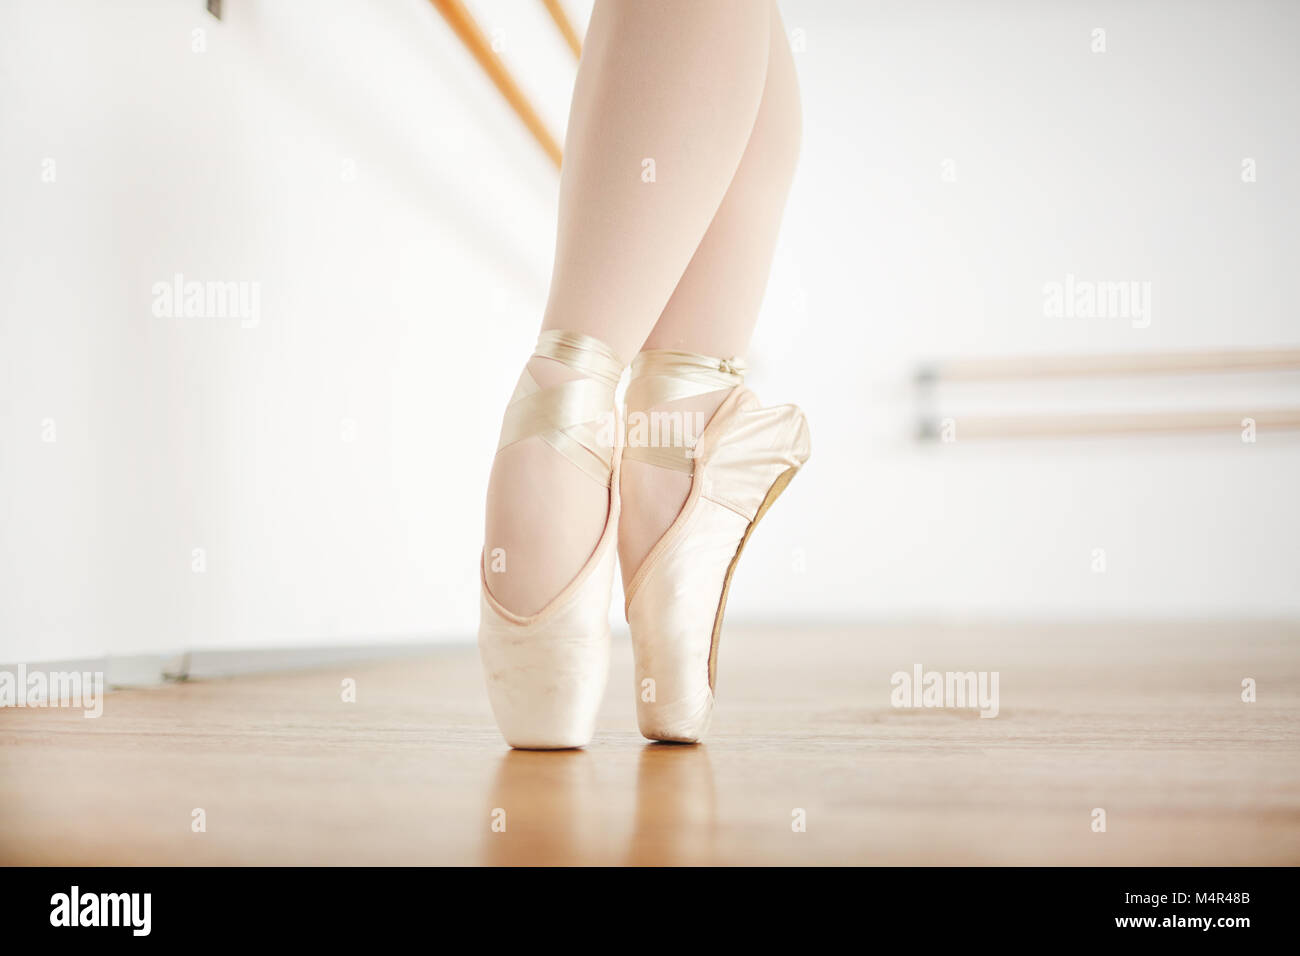 Dancing on toes - Stock Image